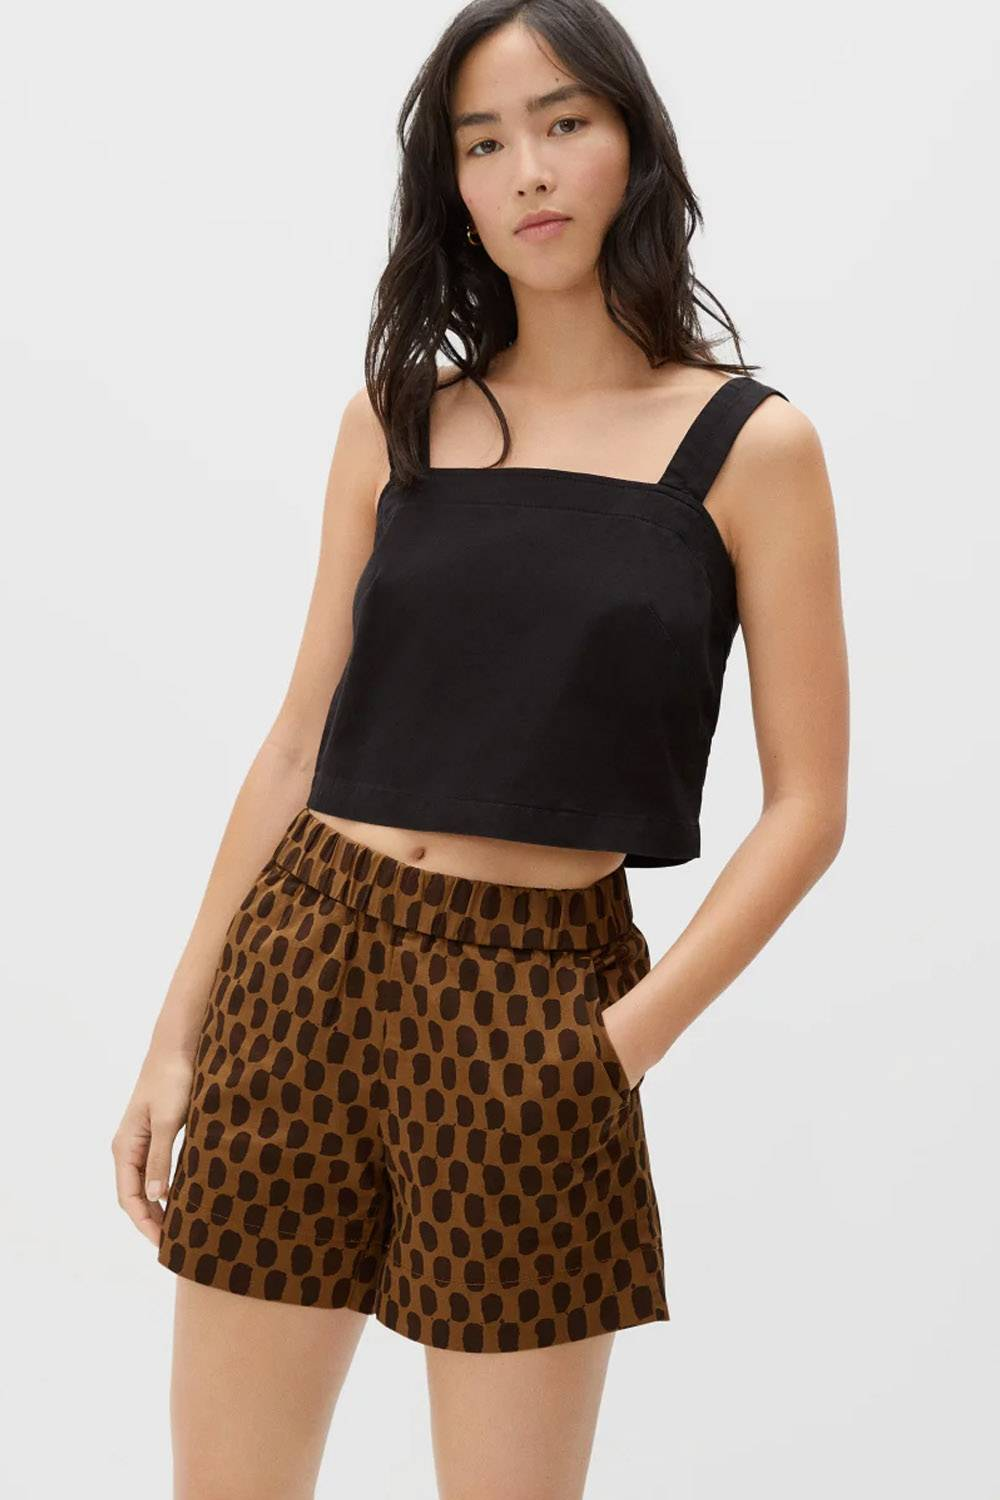 everlane ethical cropped tank top